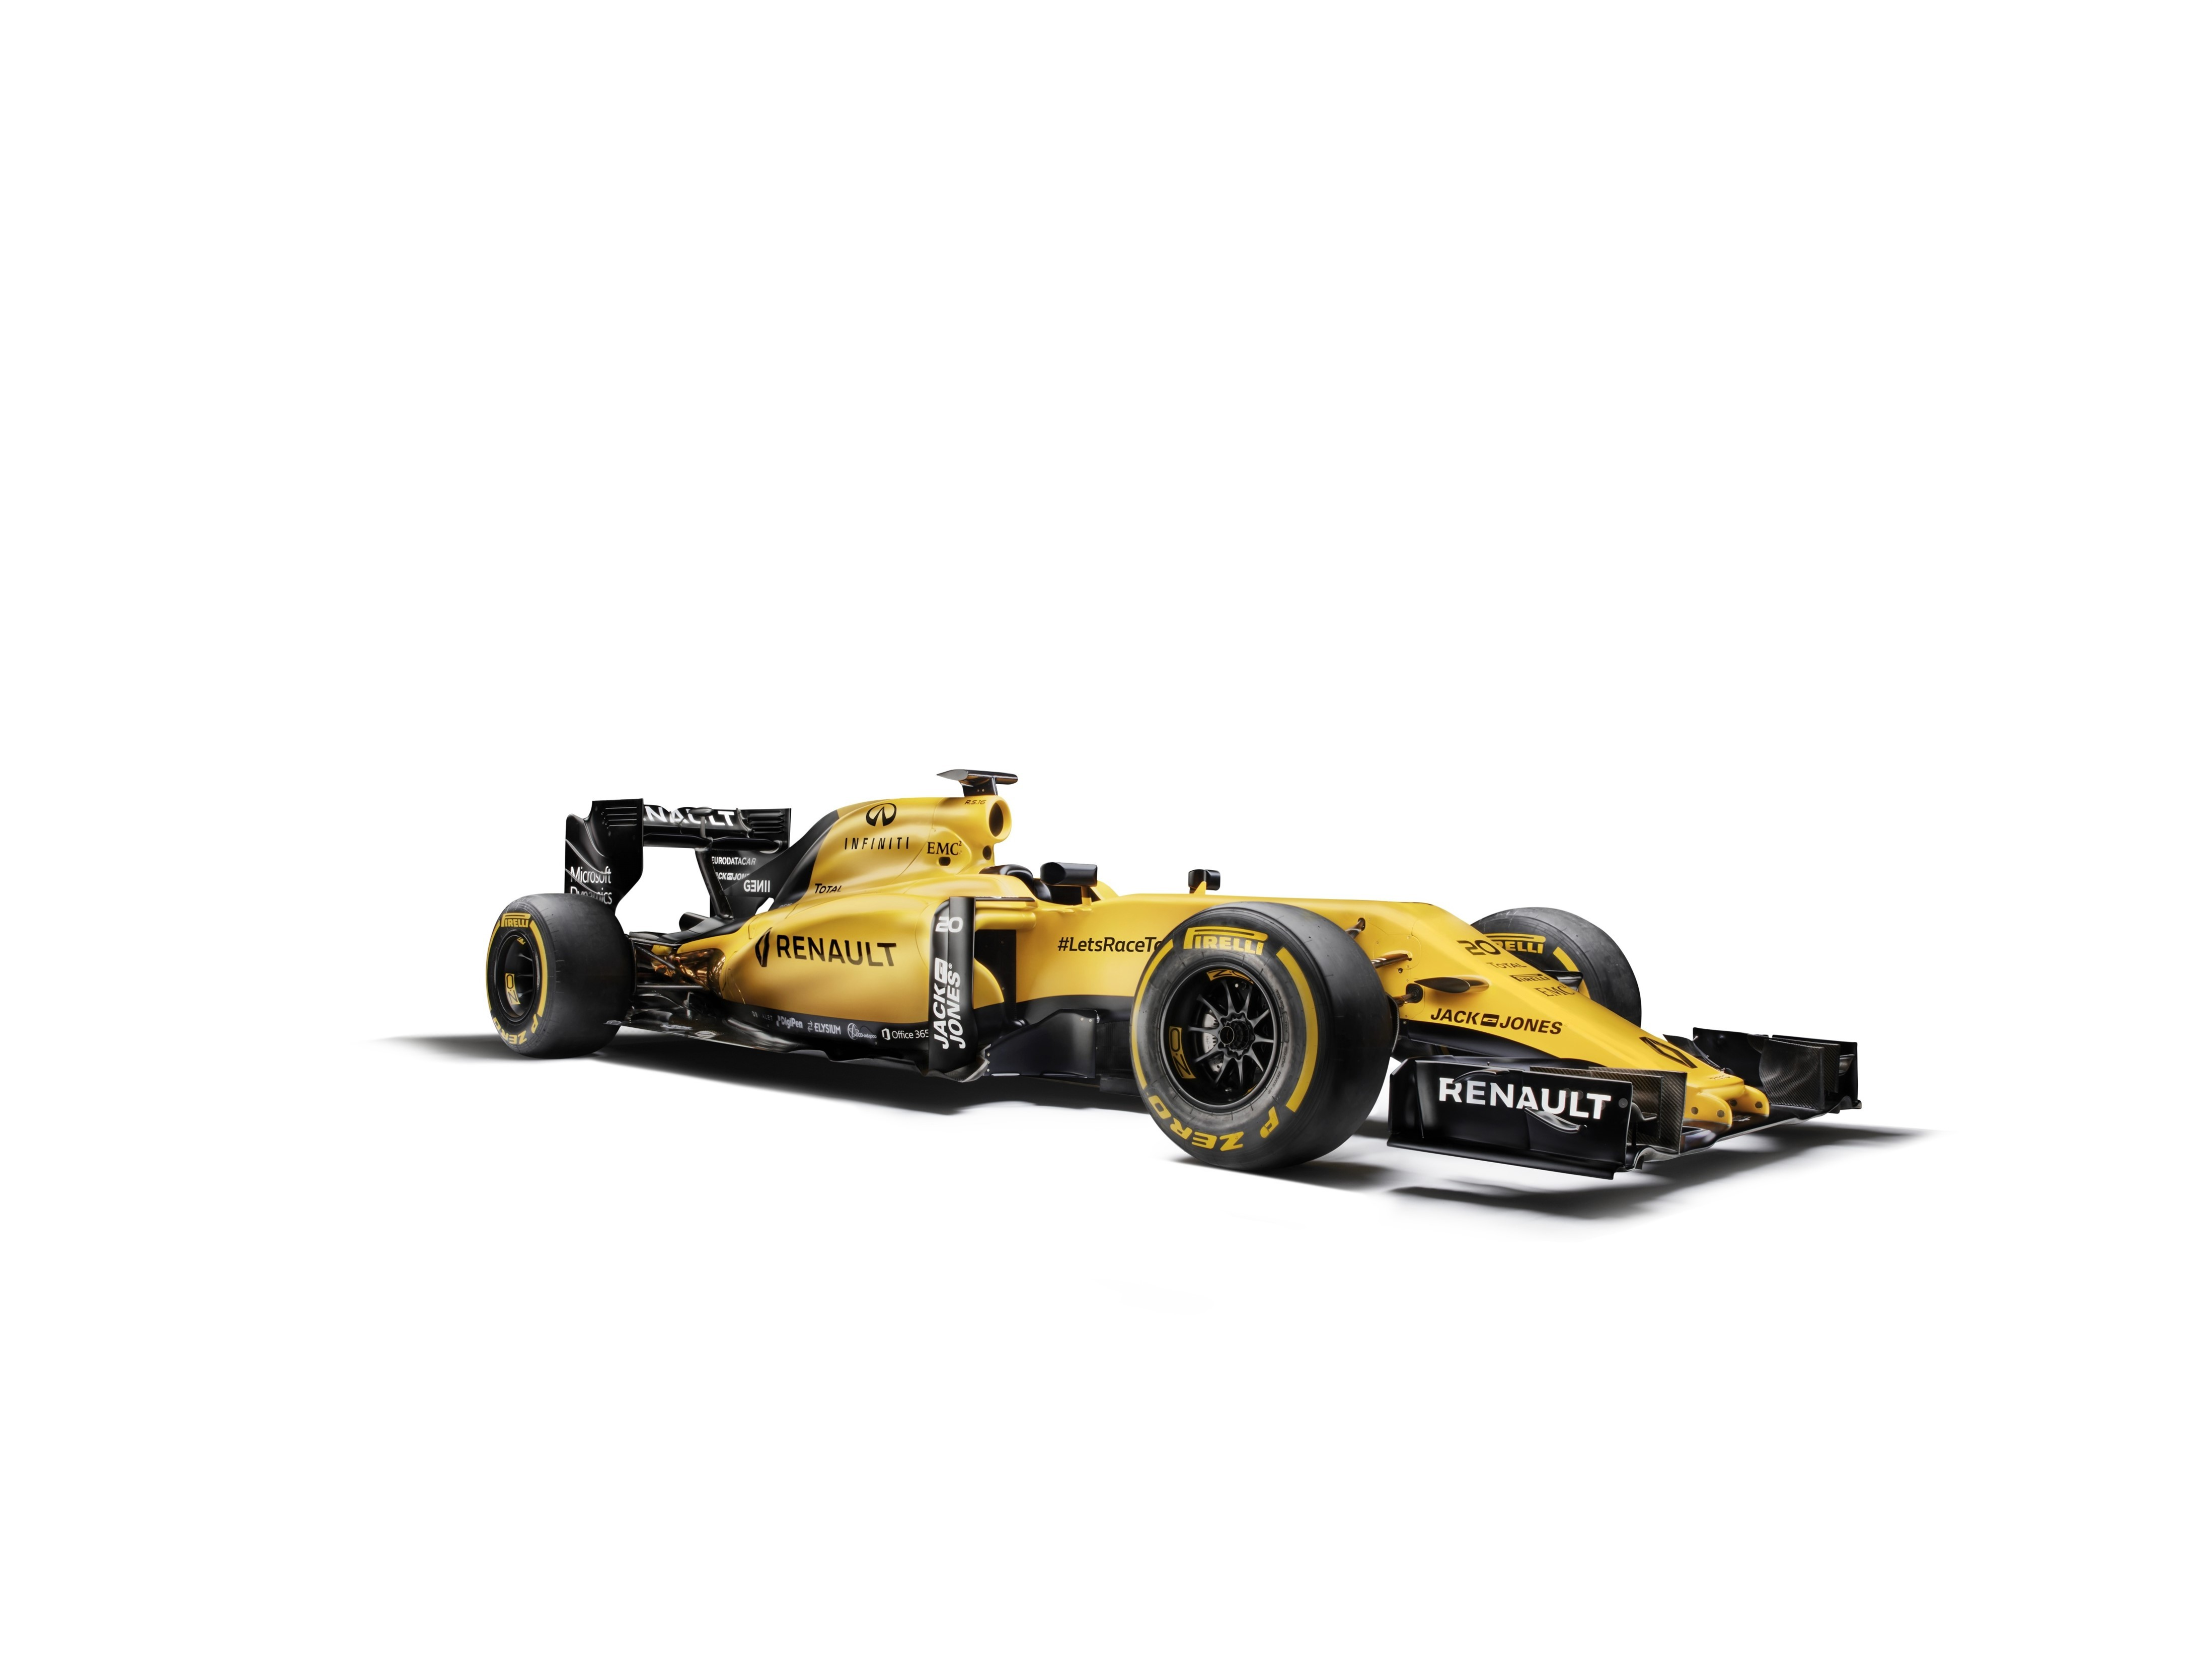 surf 39 s up new r renault sport f1 livery rides the waves autoevolution. Black Bedroom Furniture Sets. Home Design Ideas